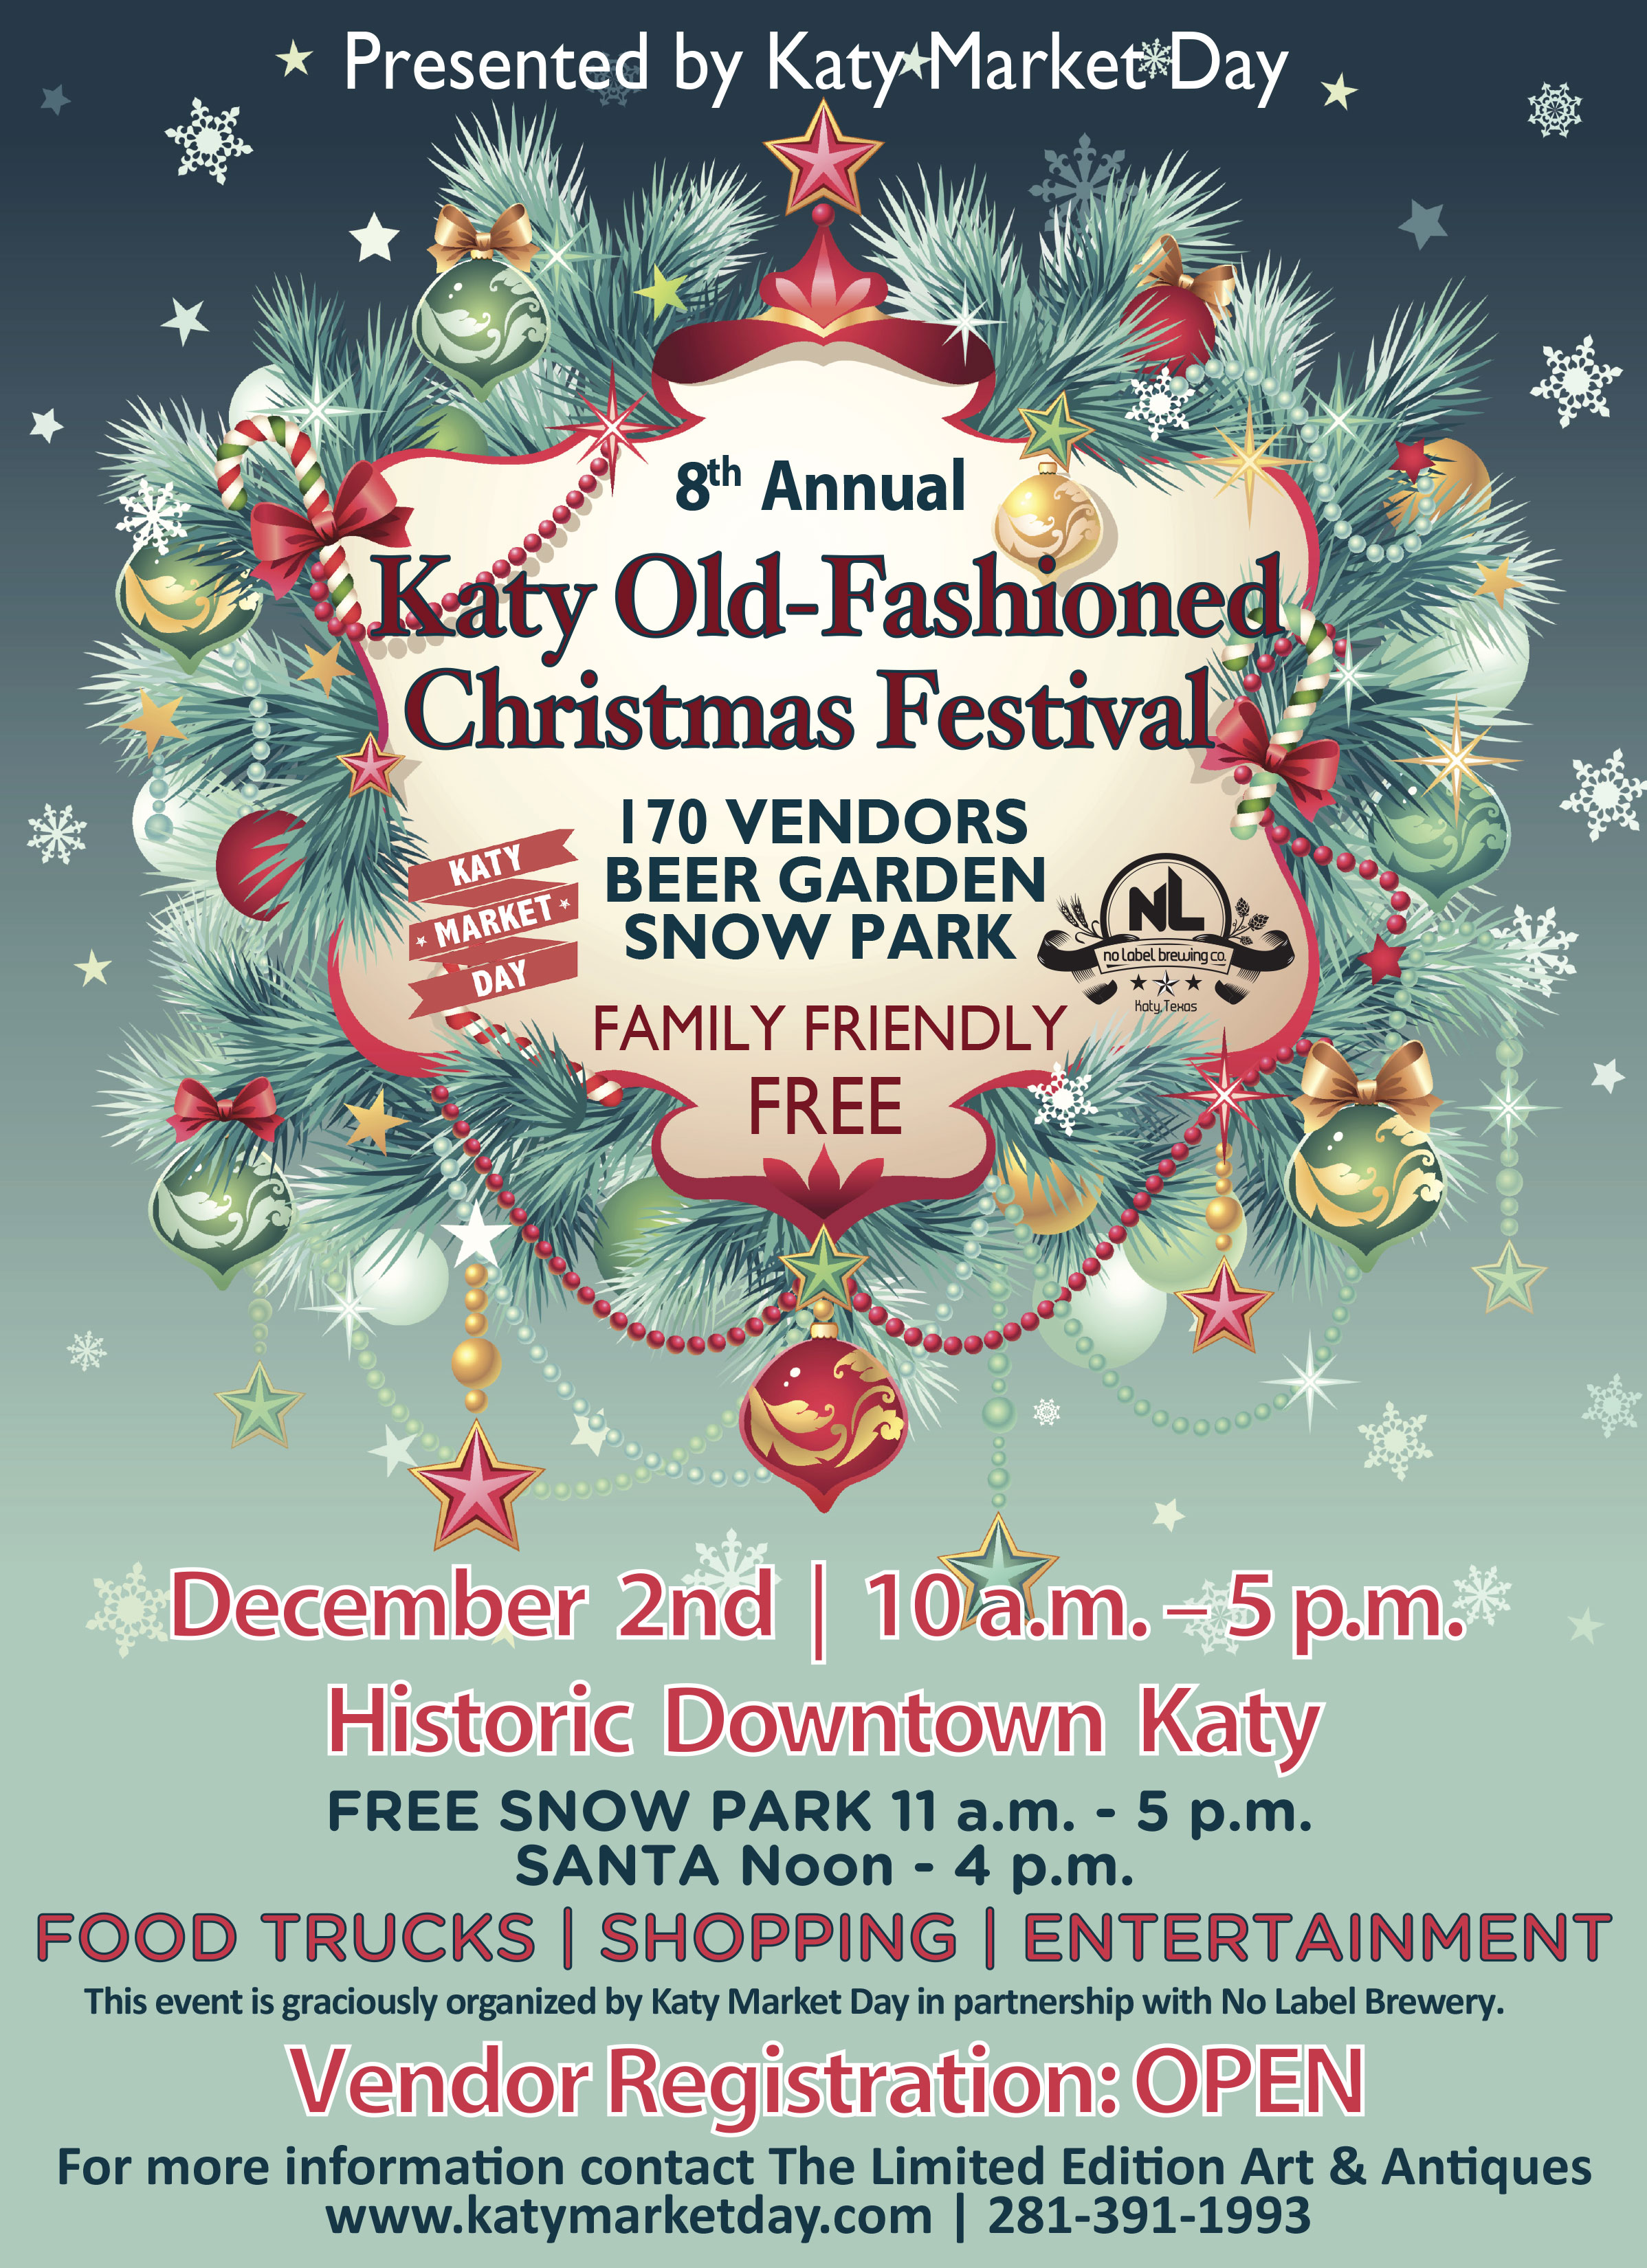 A Katy Old Fashioned Christmas Festival